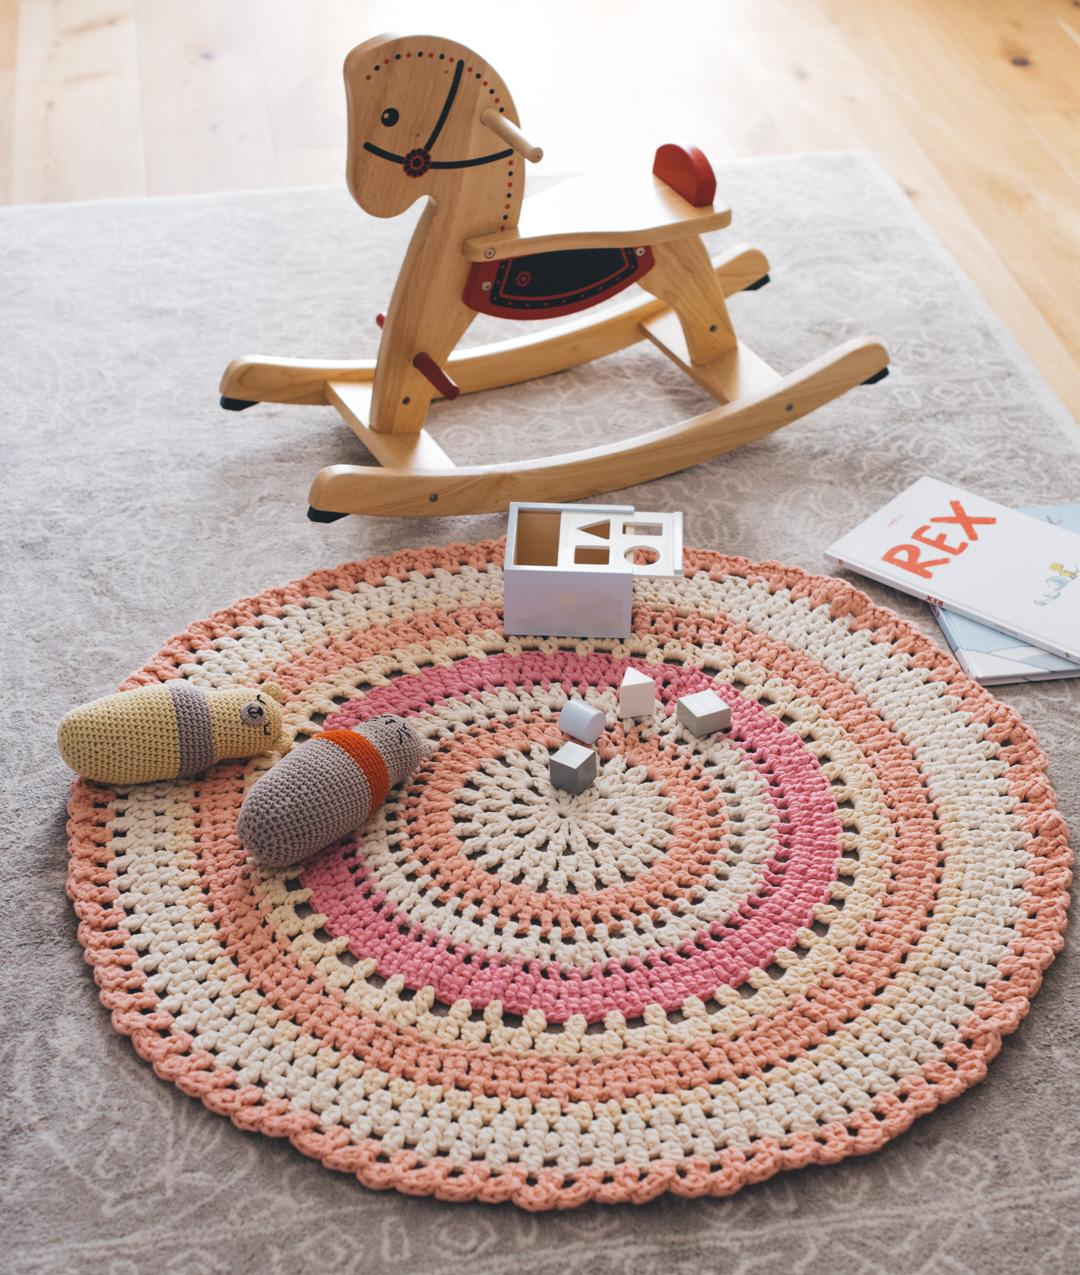 Kids Home Decor Collection - HomewareKids Home Decor Collection - Homeware - RING O'ROSES RUG - 1